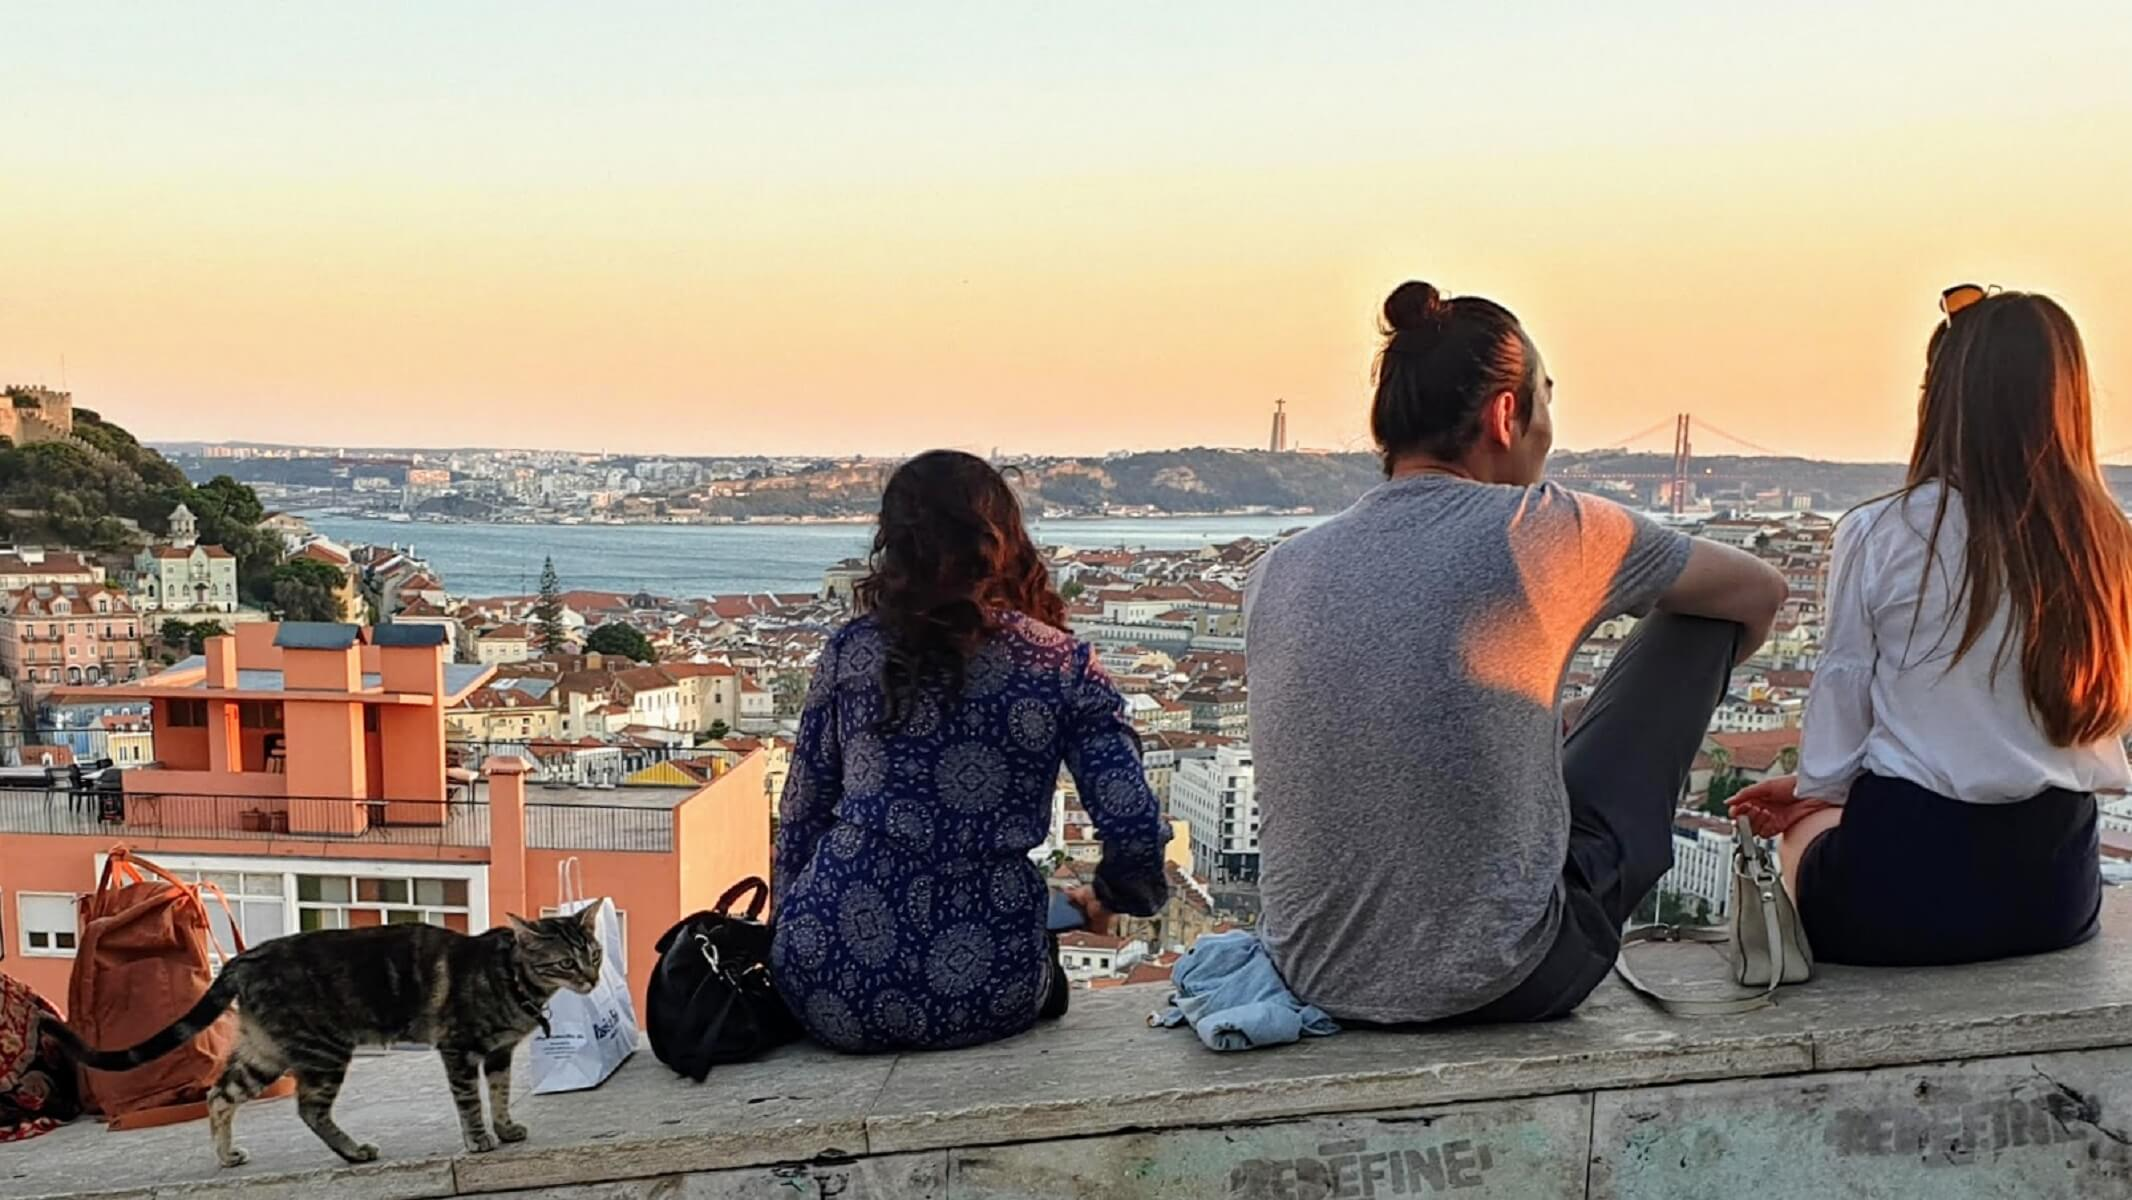 Maybe the best list of Lisbon's Best viewpoints